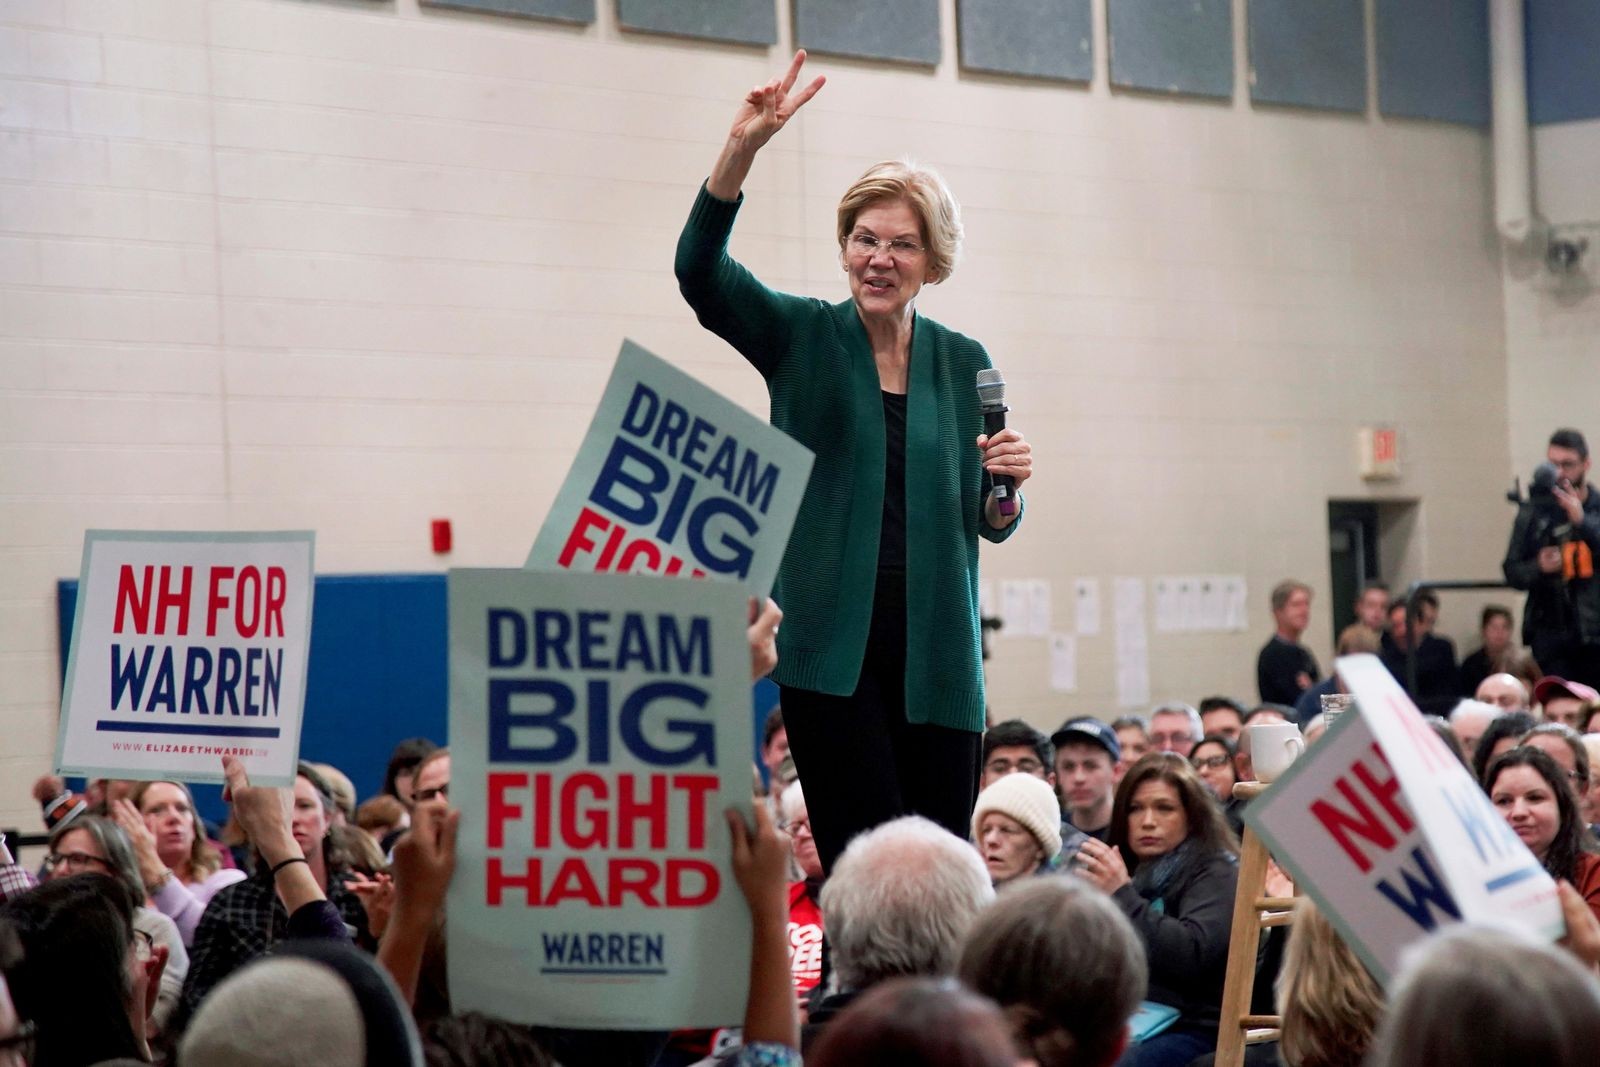 Democratic presidential candidate Sen. Elizabeth Warren, D-Mass., holds up two fingers as she speaks during a campaign stop, Saturday, Nov. 23, 2019, in Manchester, N.H. (AP Photo/Mary Schwalm)